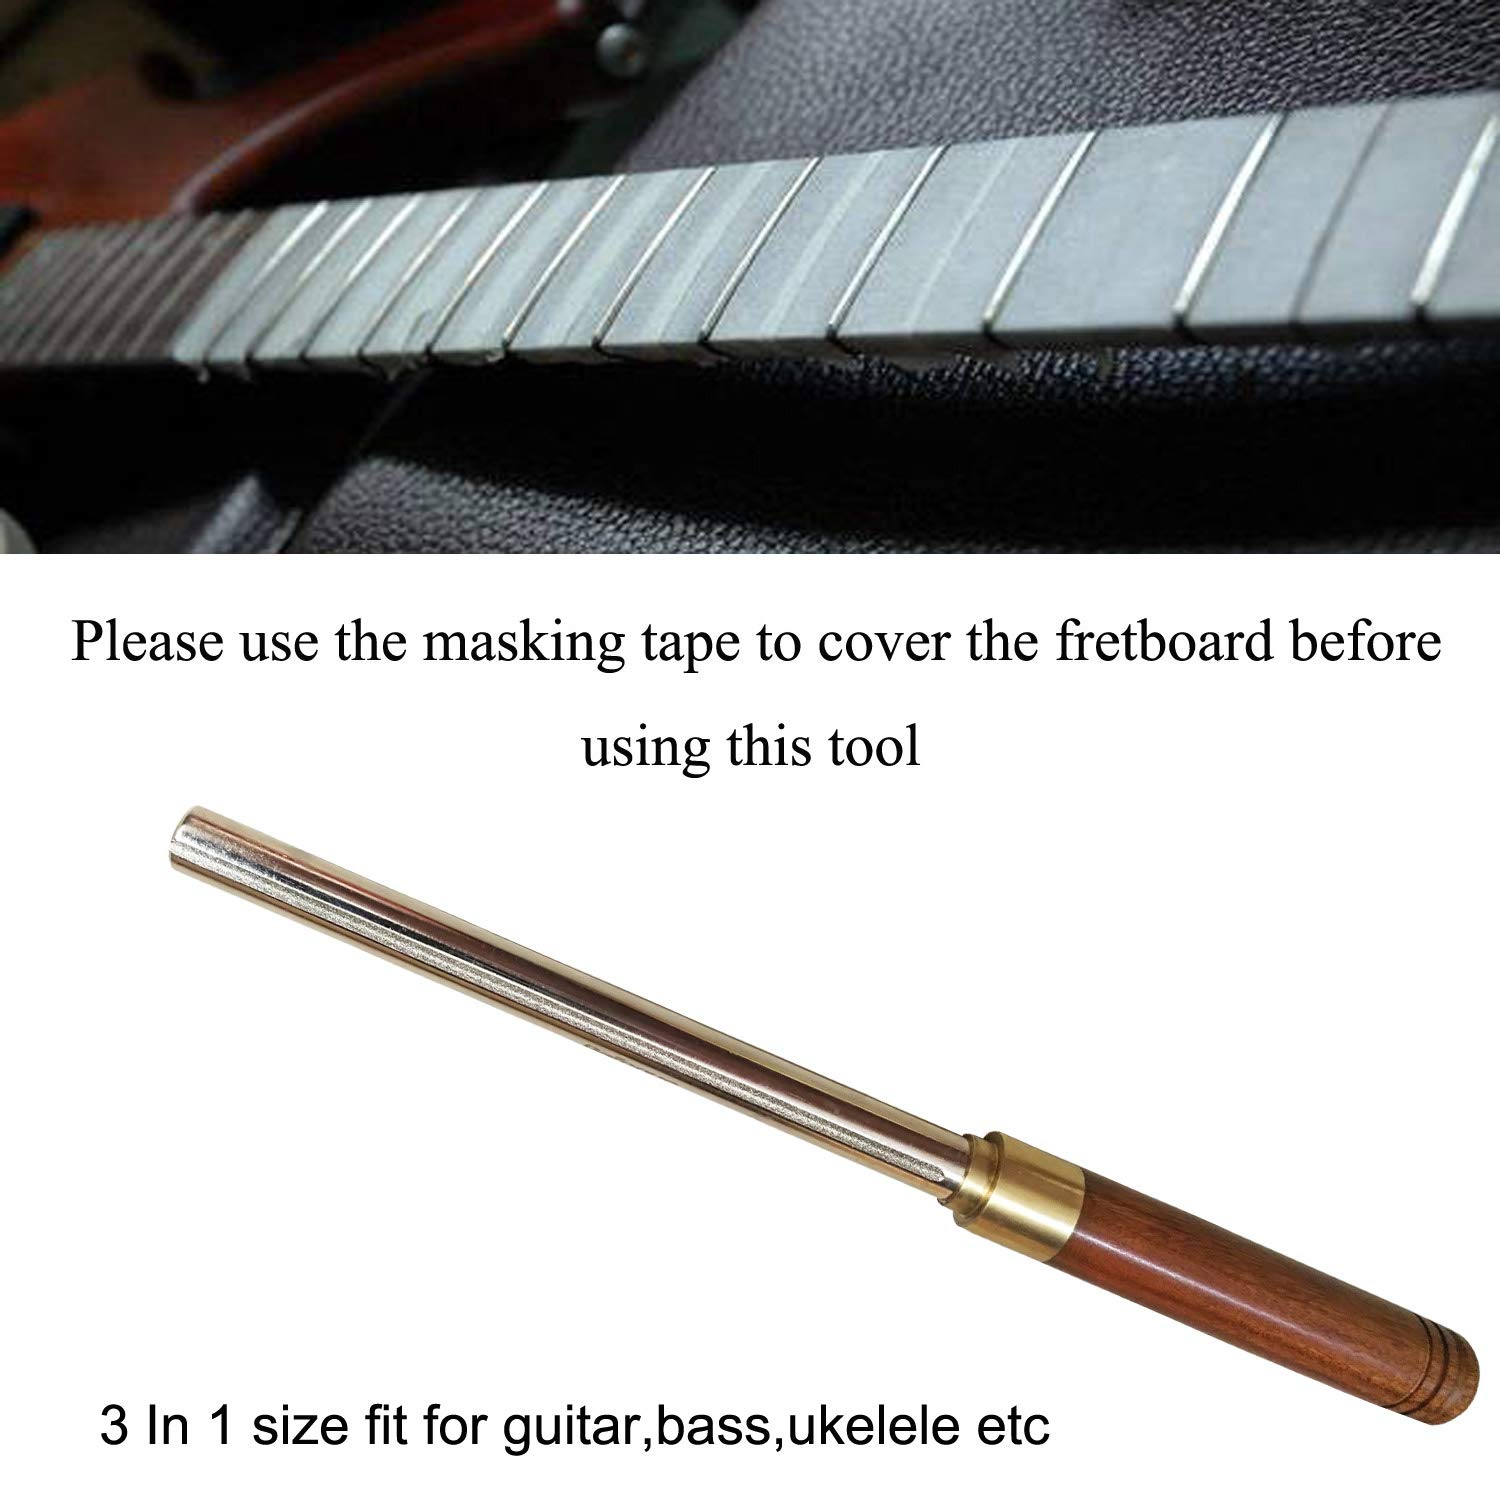 Hard-Working Fingerboard Protectors Polish Tools Cleaning Electric Stainless Steel Fret Rocker Luthier Repairing Acoustic Guitar File Set Musical Instruments